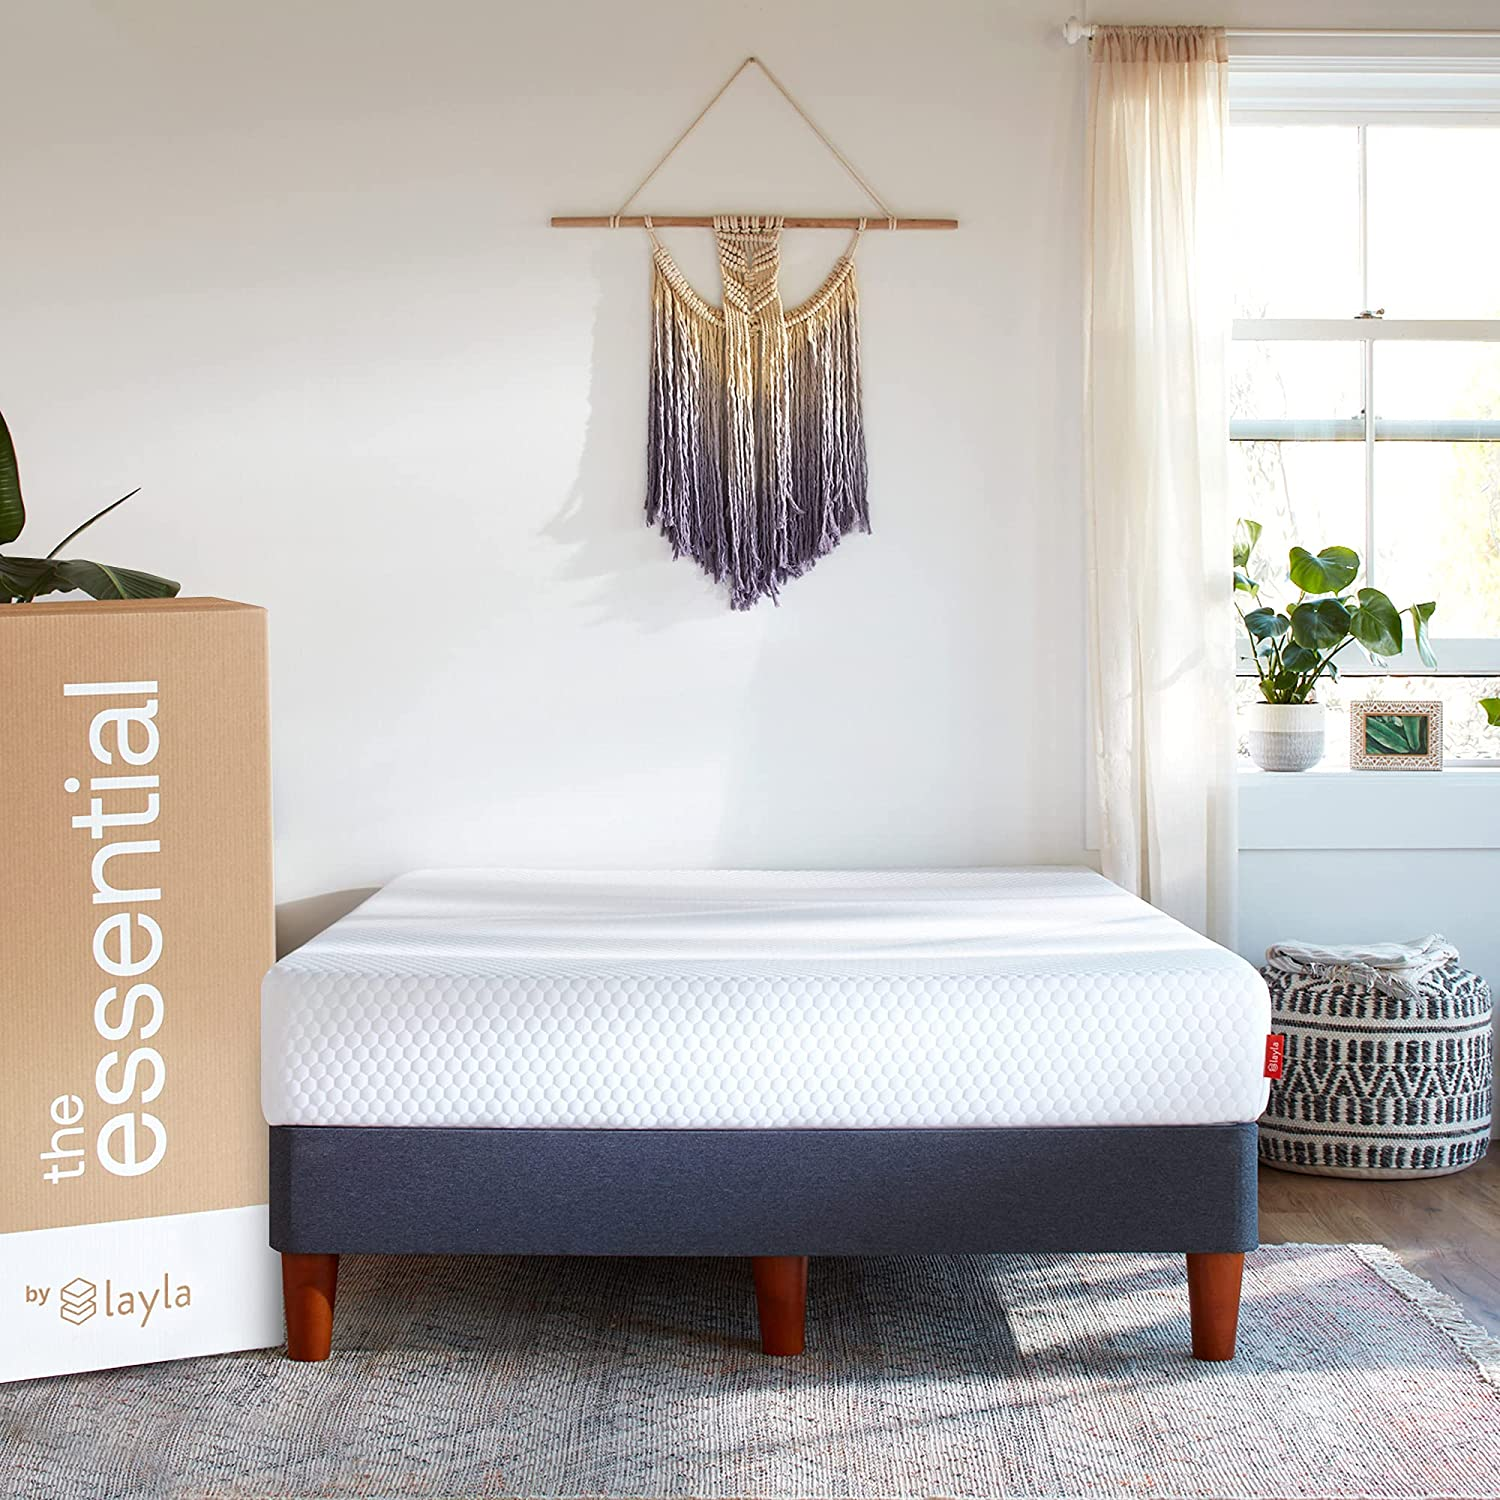 The Essential Mattress by Layla   9 in   CertiPURUS Certified Memory Foam   Get Improved Airflow with a Luxurious Feel   Fits All Sleeper Types   10 Year Limited Warranty (Full)